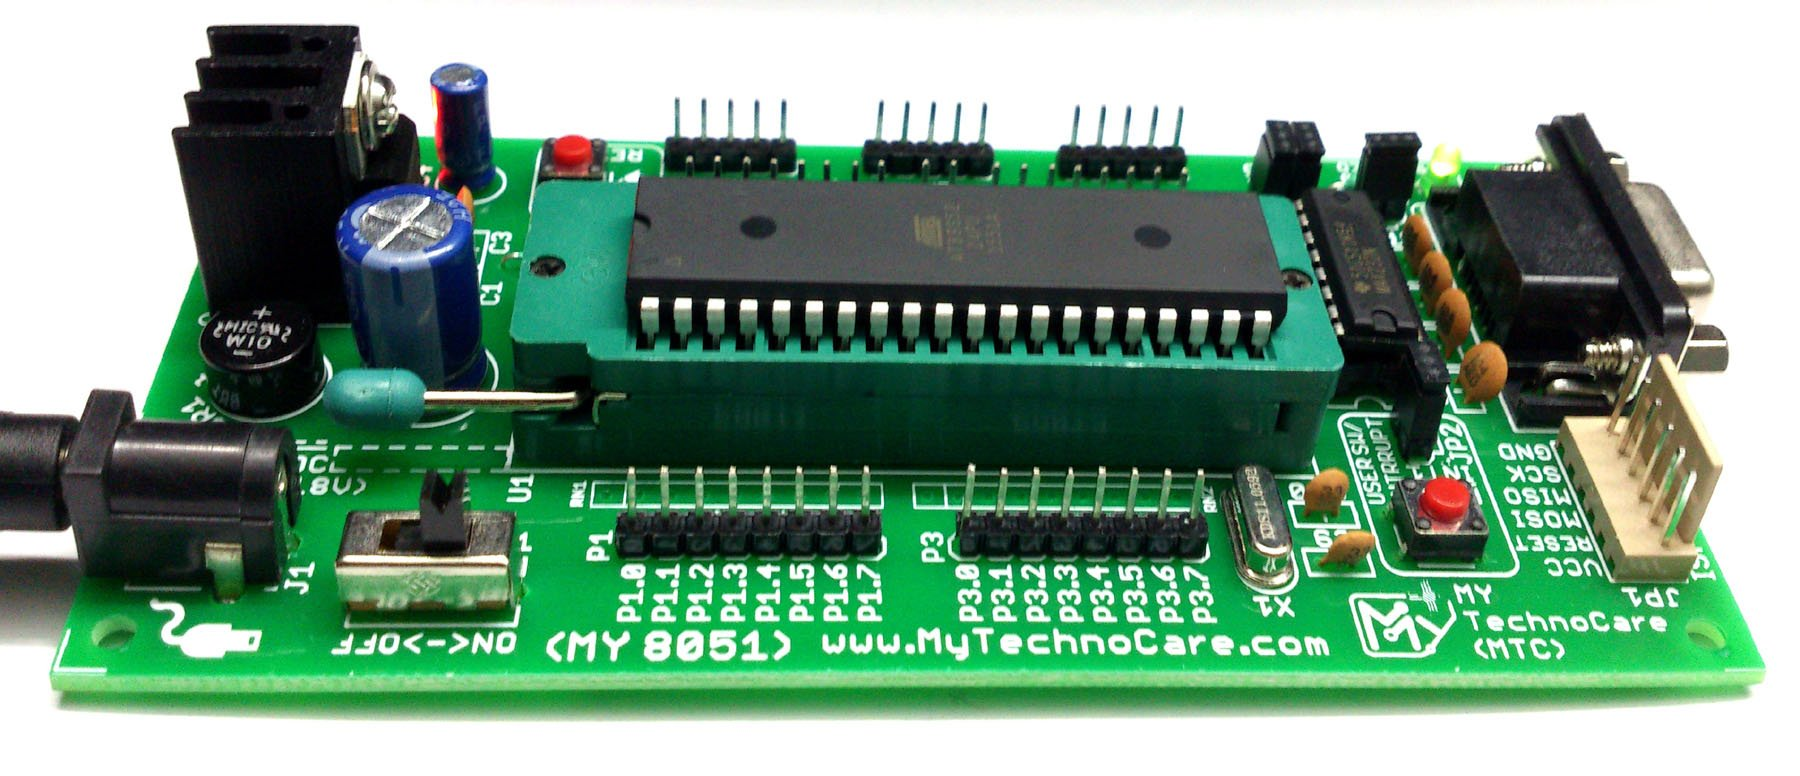 how to programmer 8051 microcontroller chip 89s52 board interfaceing 16x2 lcd usb programmer low price at89s52 [ 1800 x 776 Pixel ]